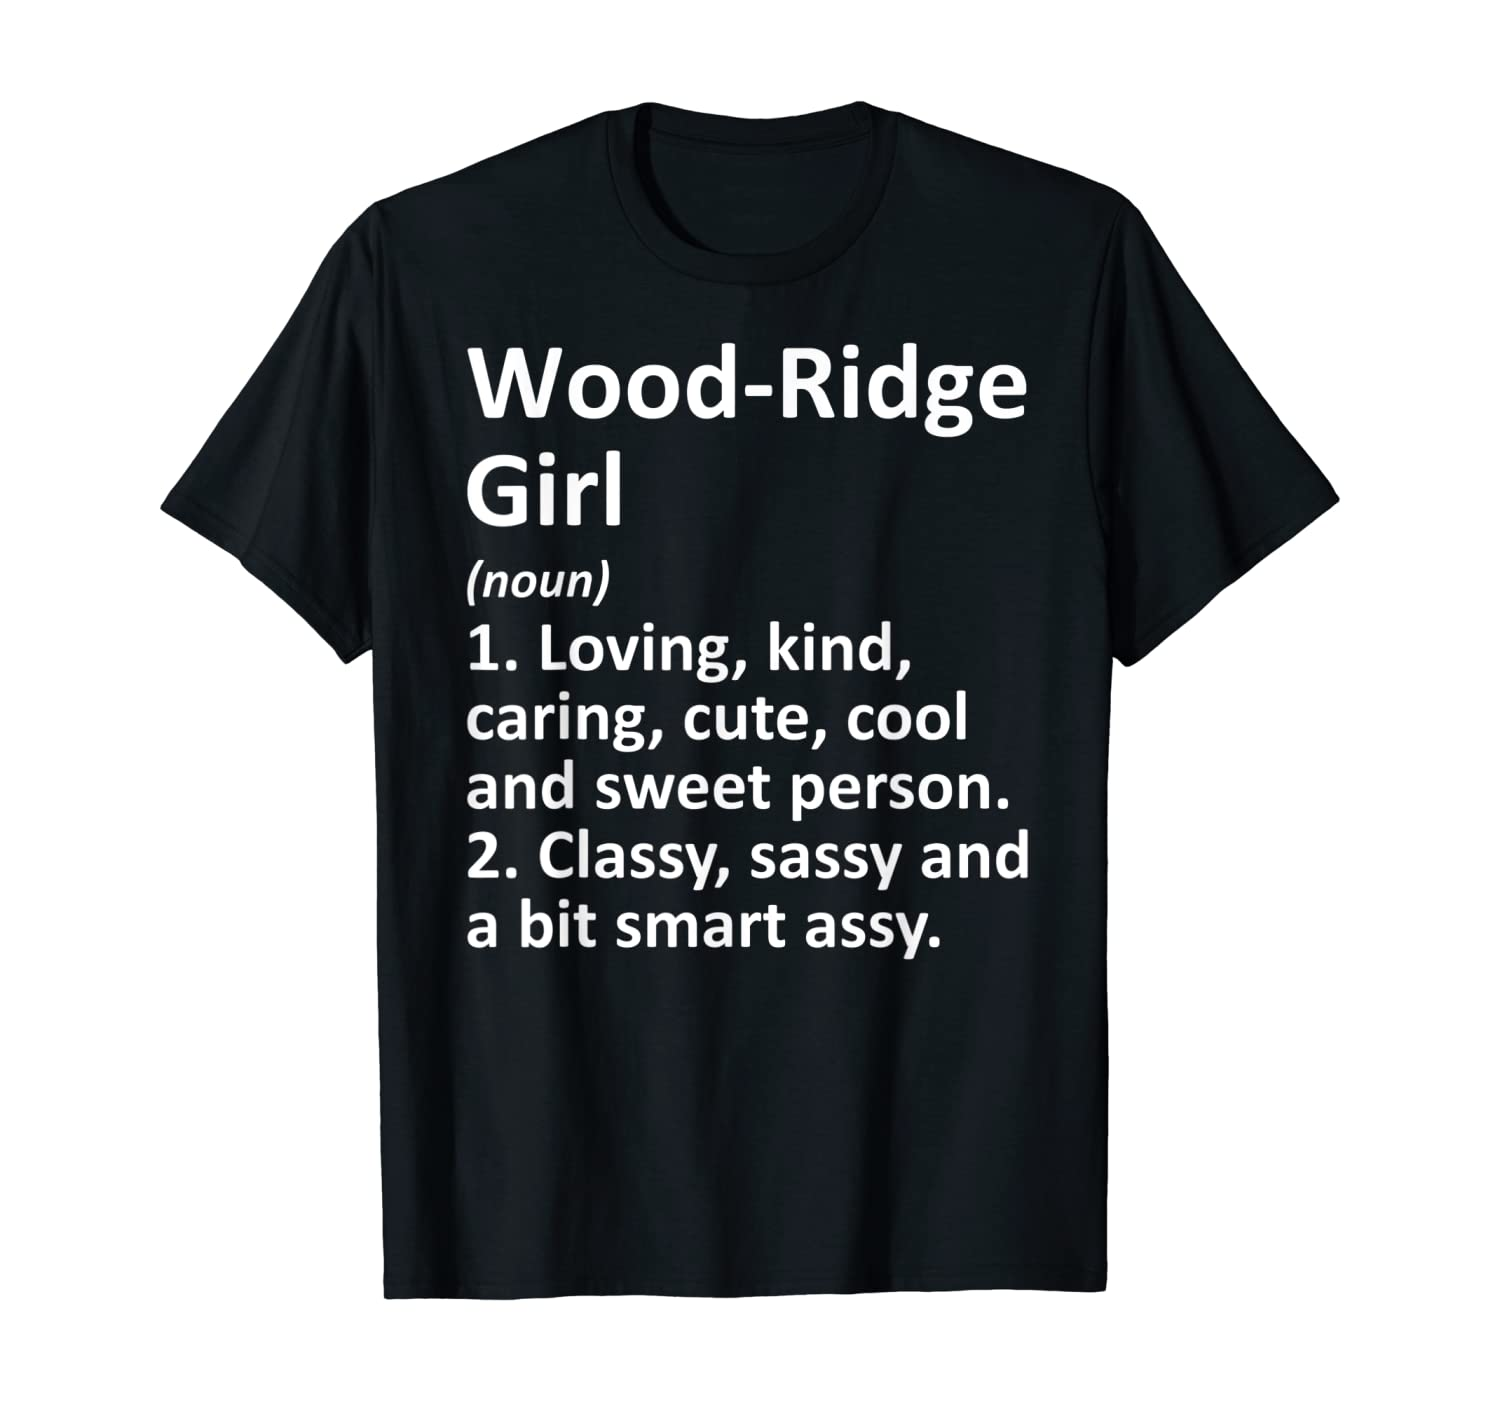 WOOD-RIDGE GIRL NJ NEW JERSEY Funny City Home Roots Gift T-Shirt